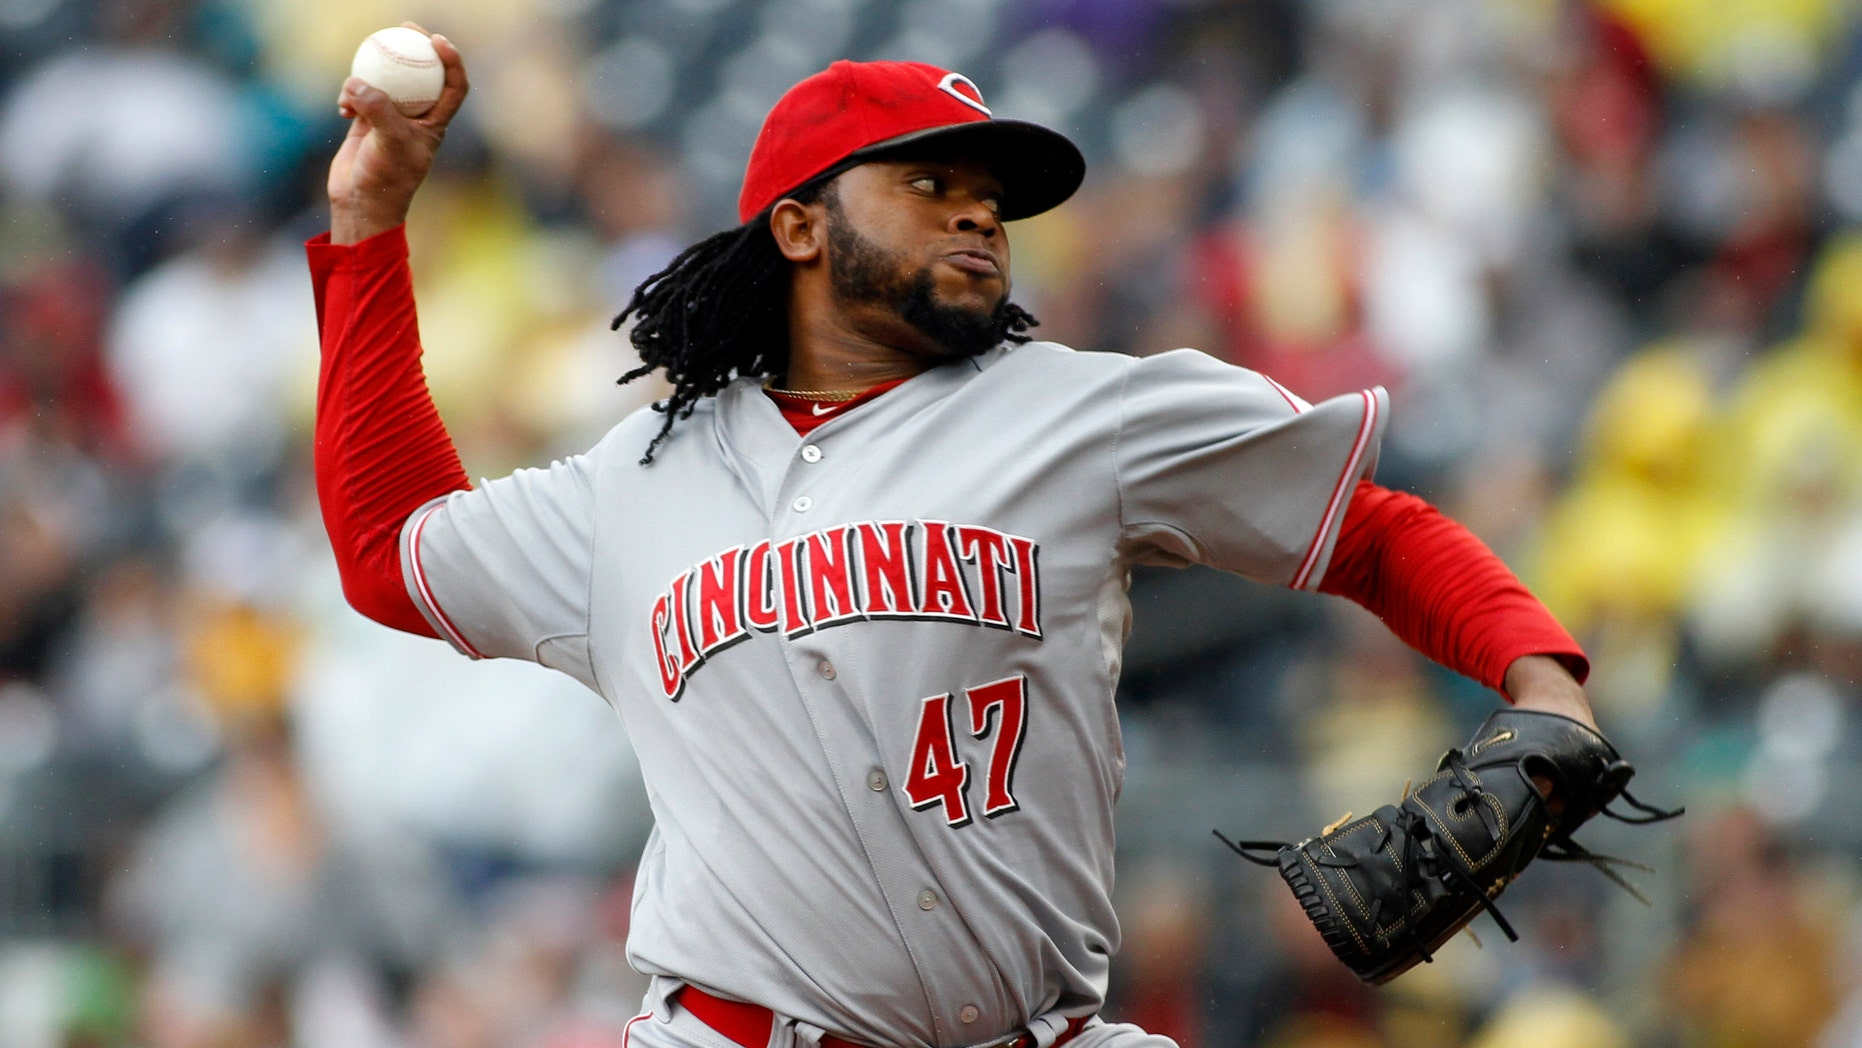 PITTSBURGH, PA - SEPTEMBER 30:  Johnny Cueto #47 of the Cincinnati Reds pitches against the Pittsburgh Pirates during the game on September 30, 2012 at PNC Park in Pittsburgh, Pennsylvania.  (Photo by Justin K. Aller/Getty Images)